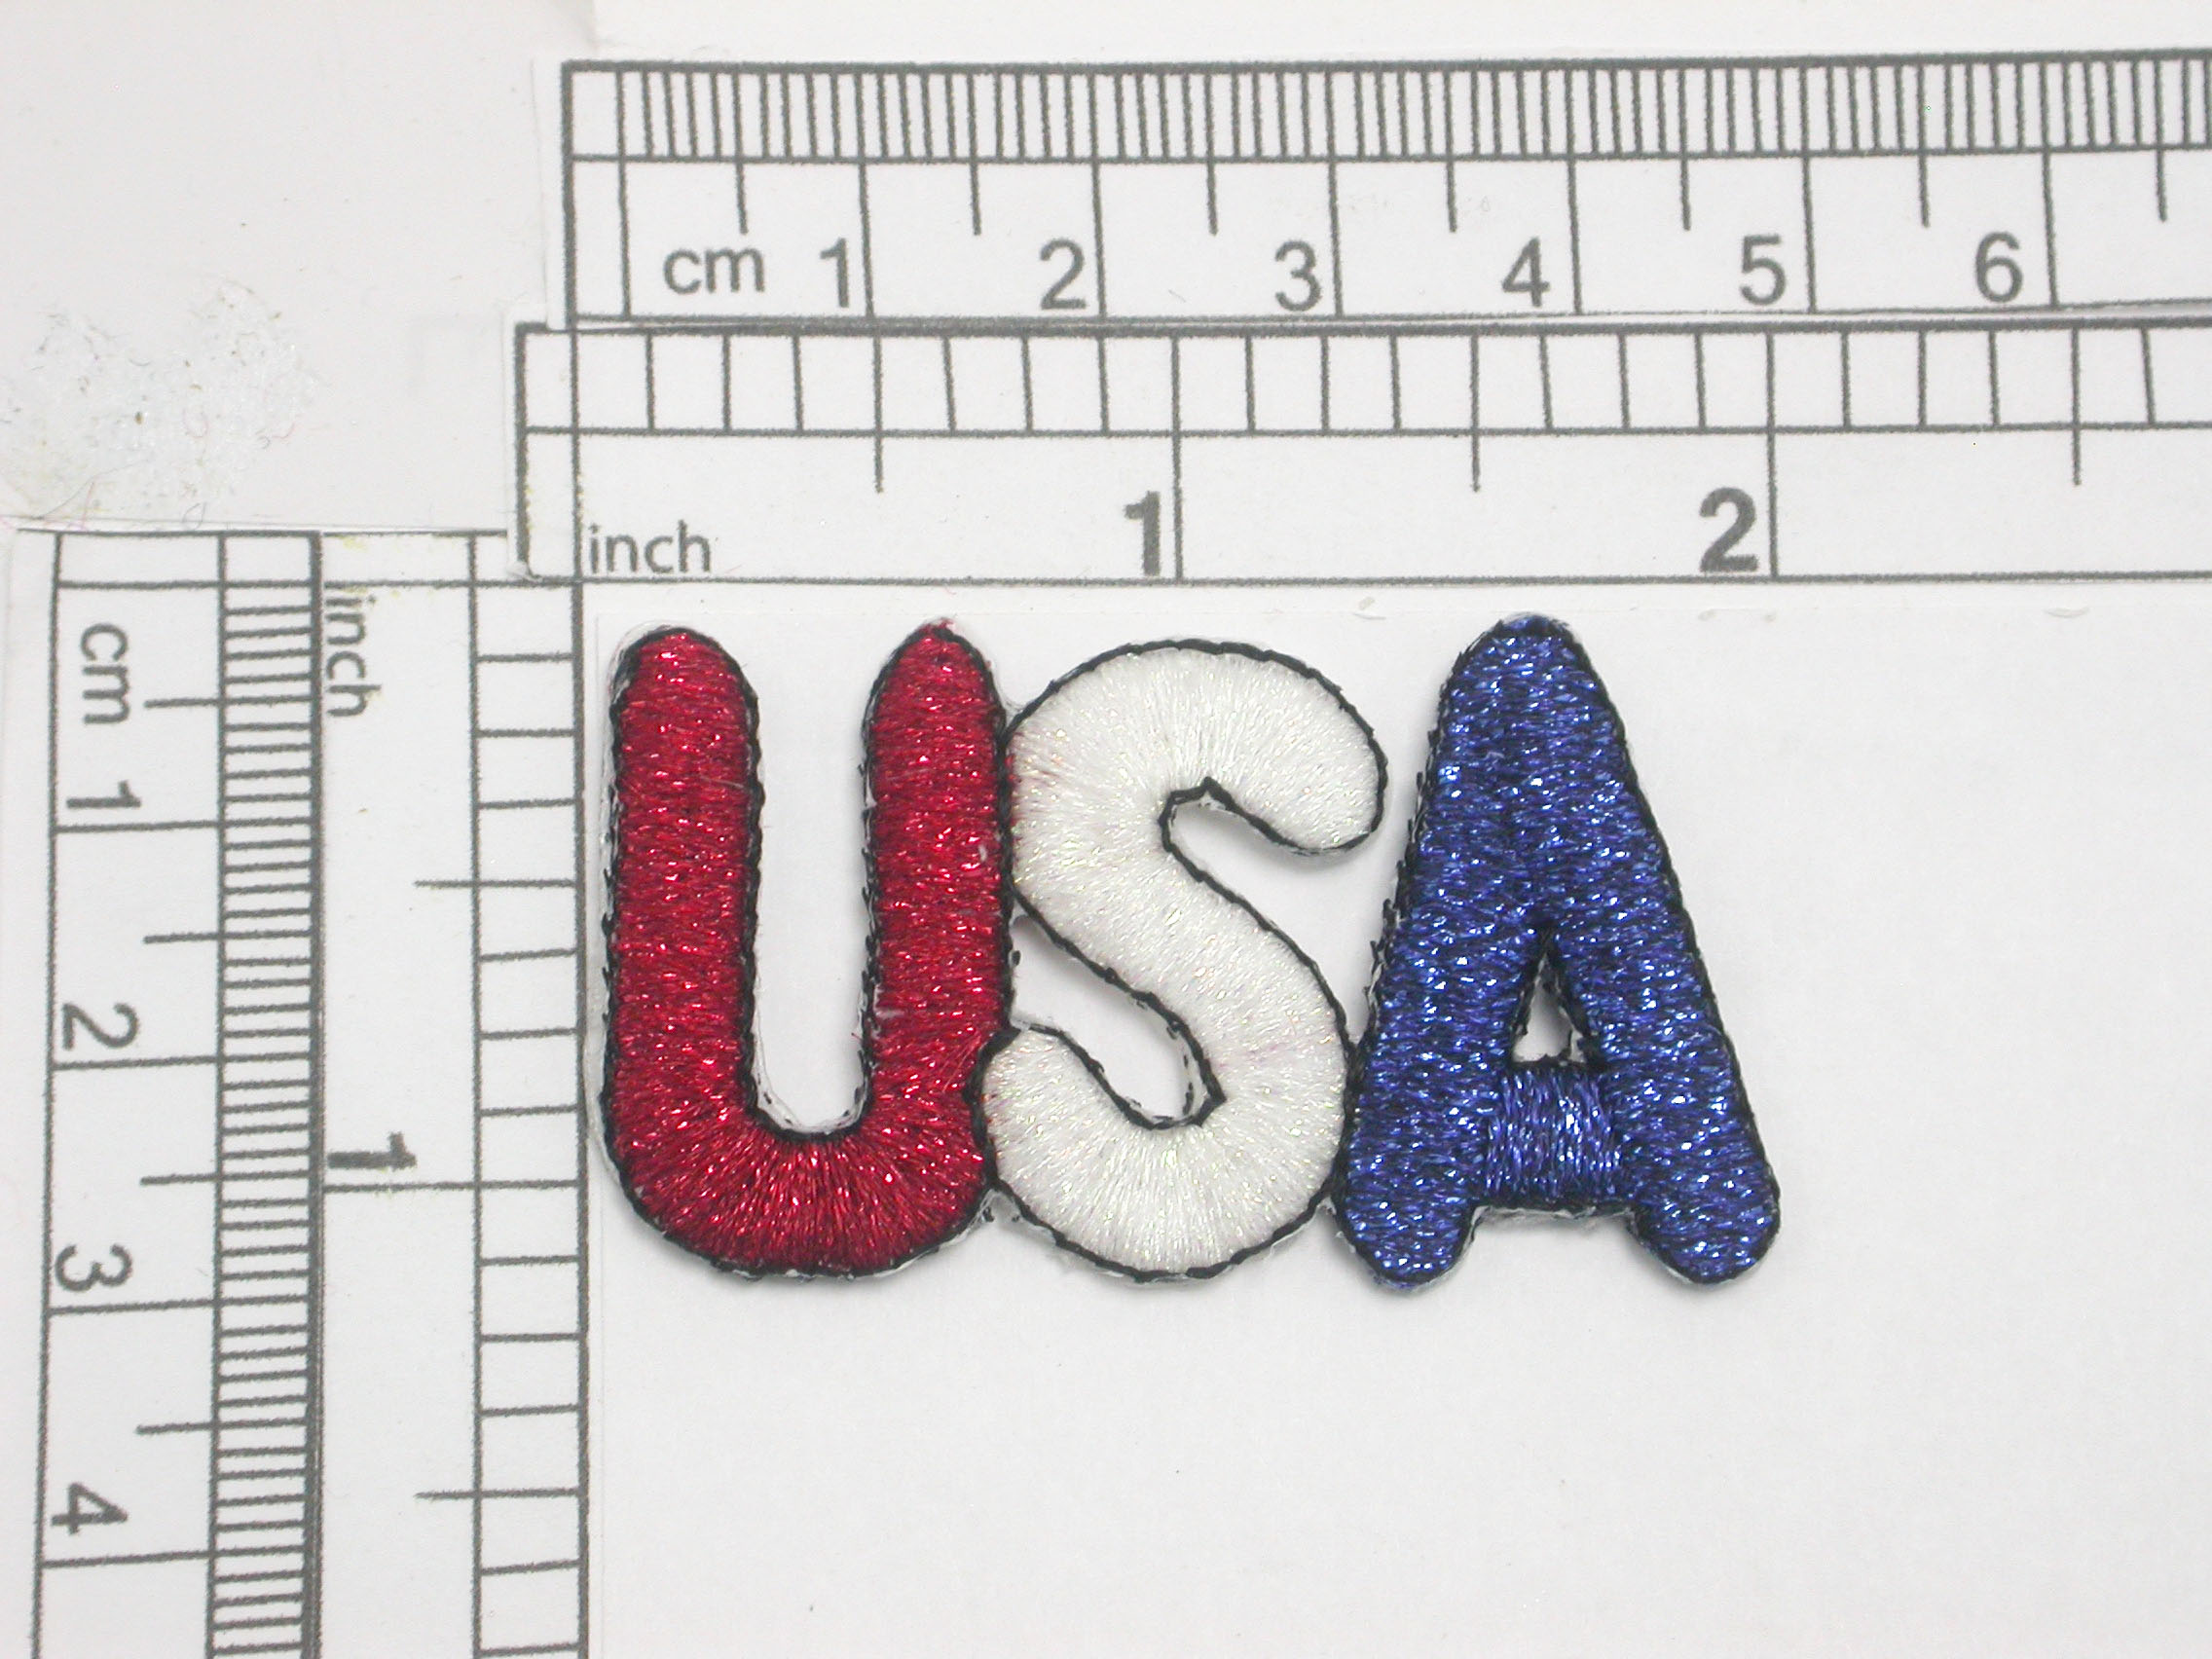 """USA Iron On Patch Applique Red White Blue Metallic Fully Embroidered in Red White & Blue Metallic Thread Measures 1 7/8"""" long x 1 1 /16"""" high"""